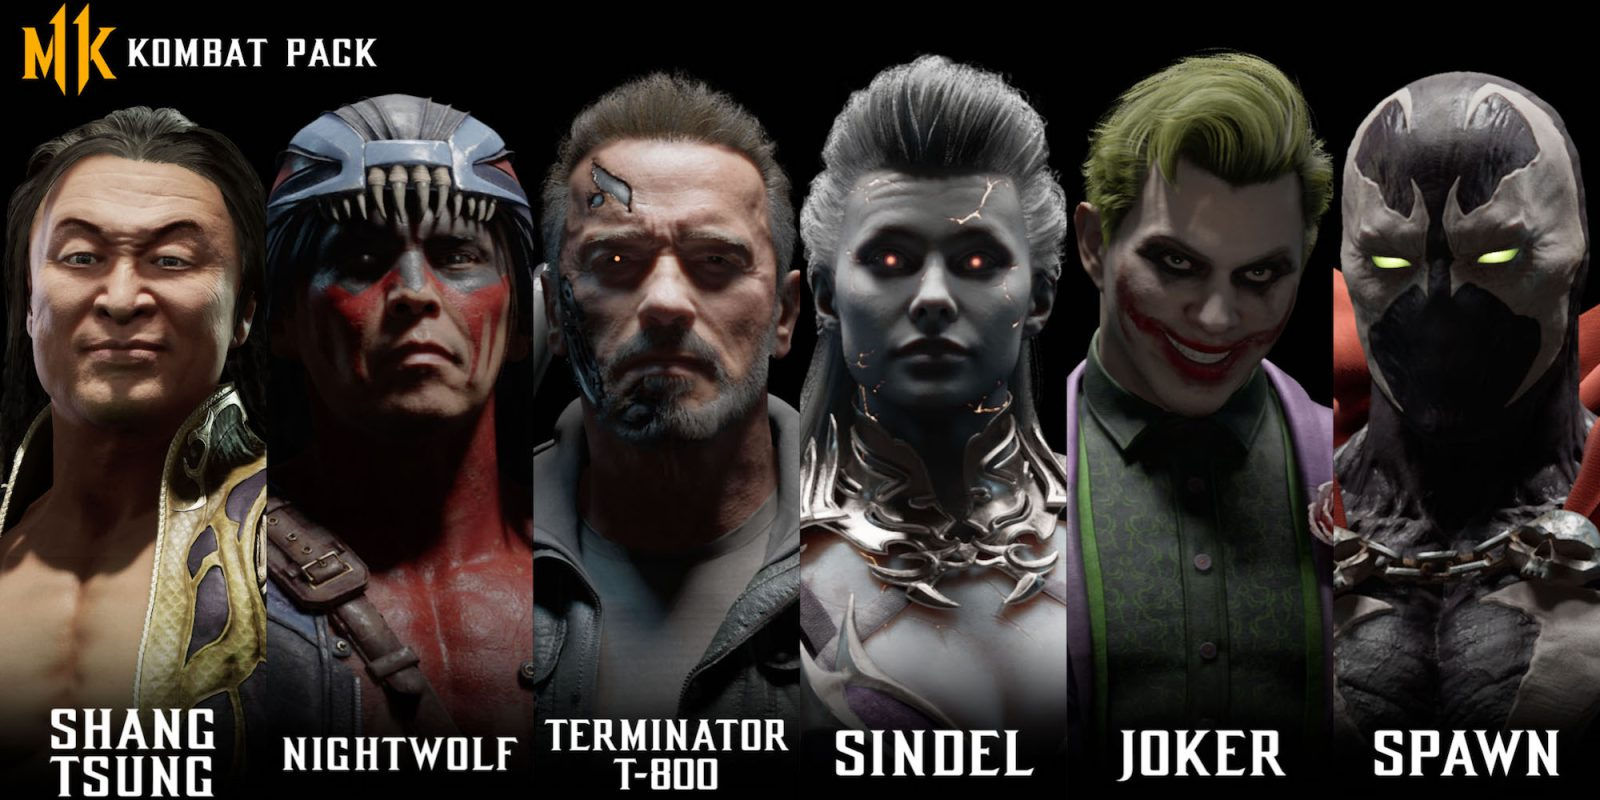 New Mortal Kombat 11 Characters Revealed 9to5toys